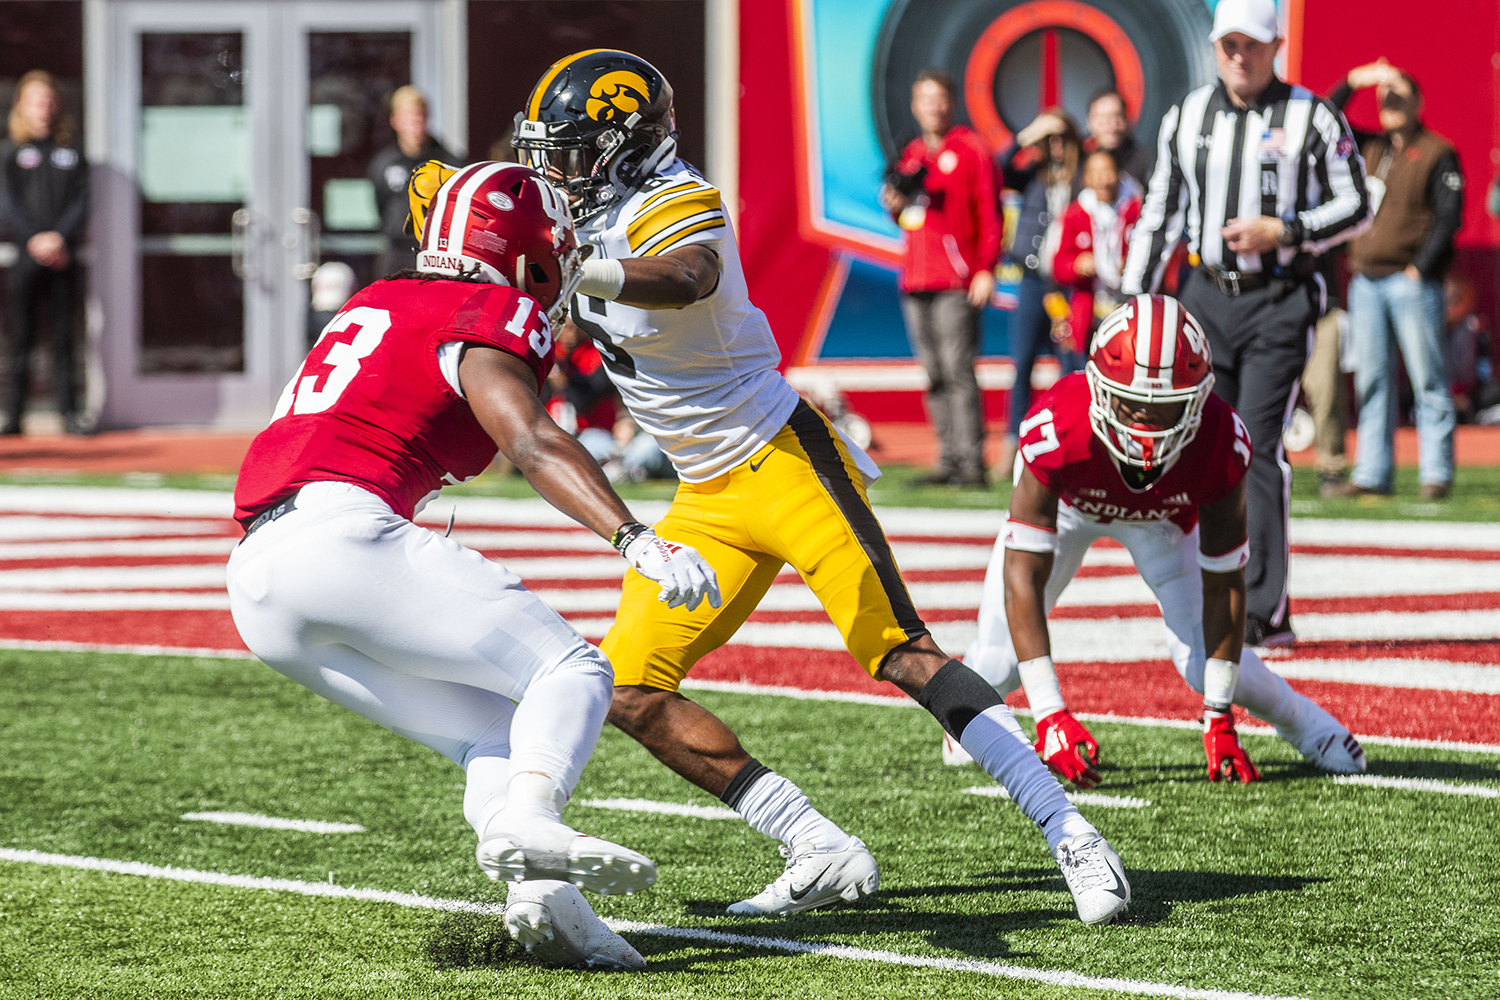 Indiana defensive back Issac James prepares to tackle Iowa wide receiver Ihmir Smith-Marsette during Iowa's game at Indiana at Memorial Stadium in Bloomington on Saturday, October 13, 2018. The Hawkeyes beat the Hoosiers 42-16.